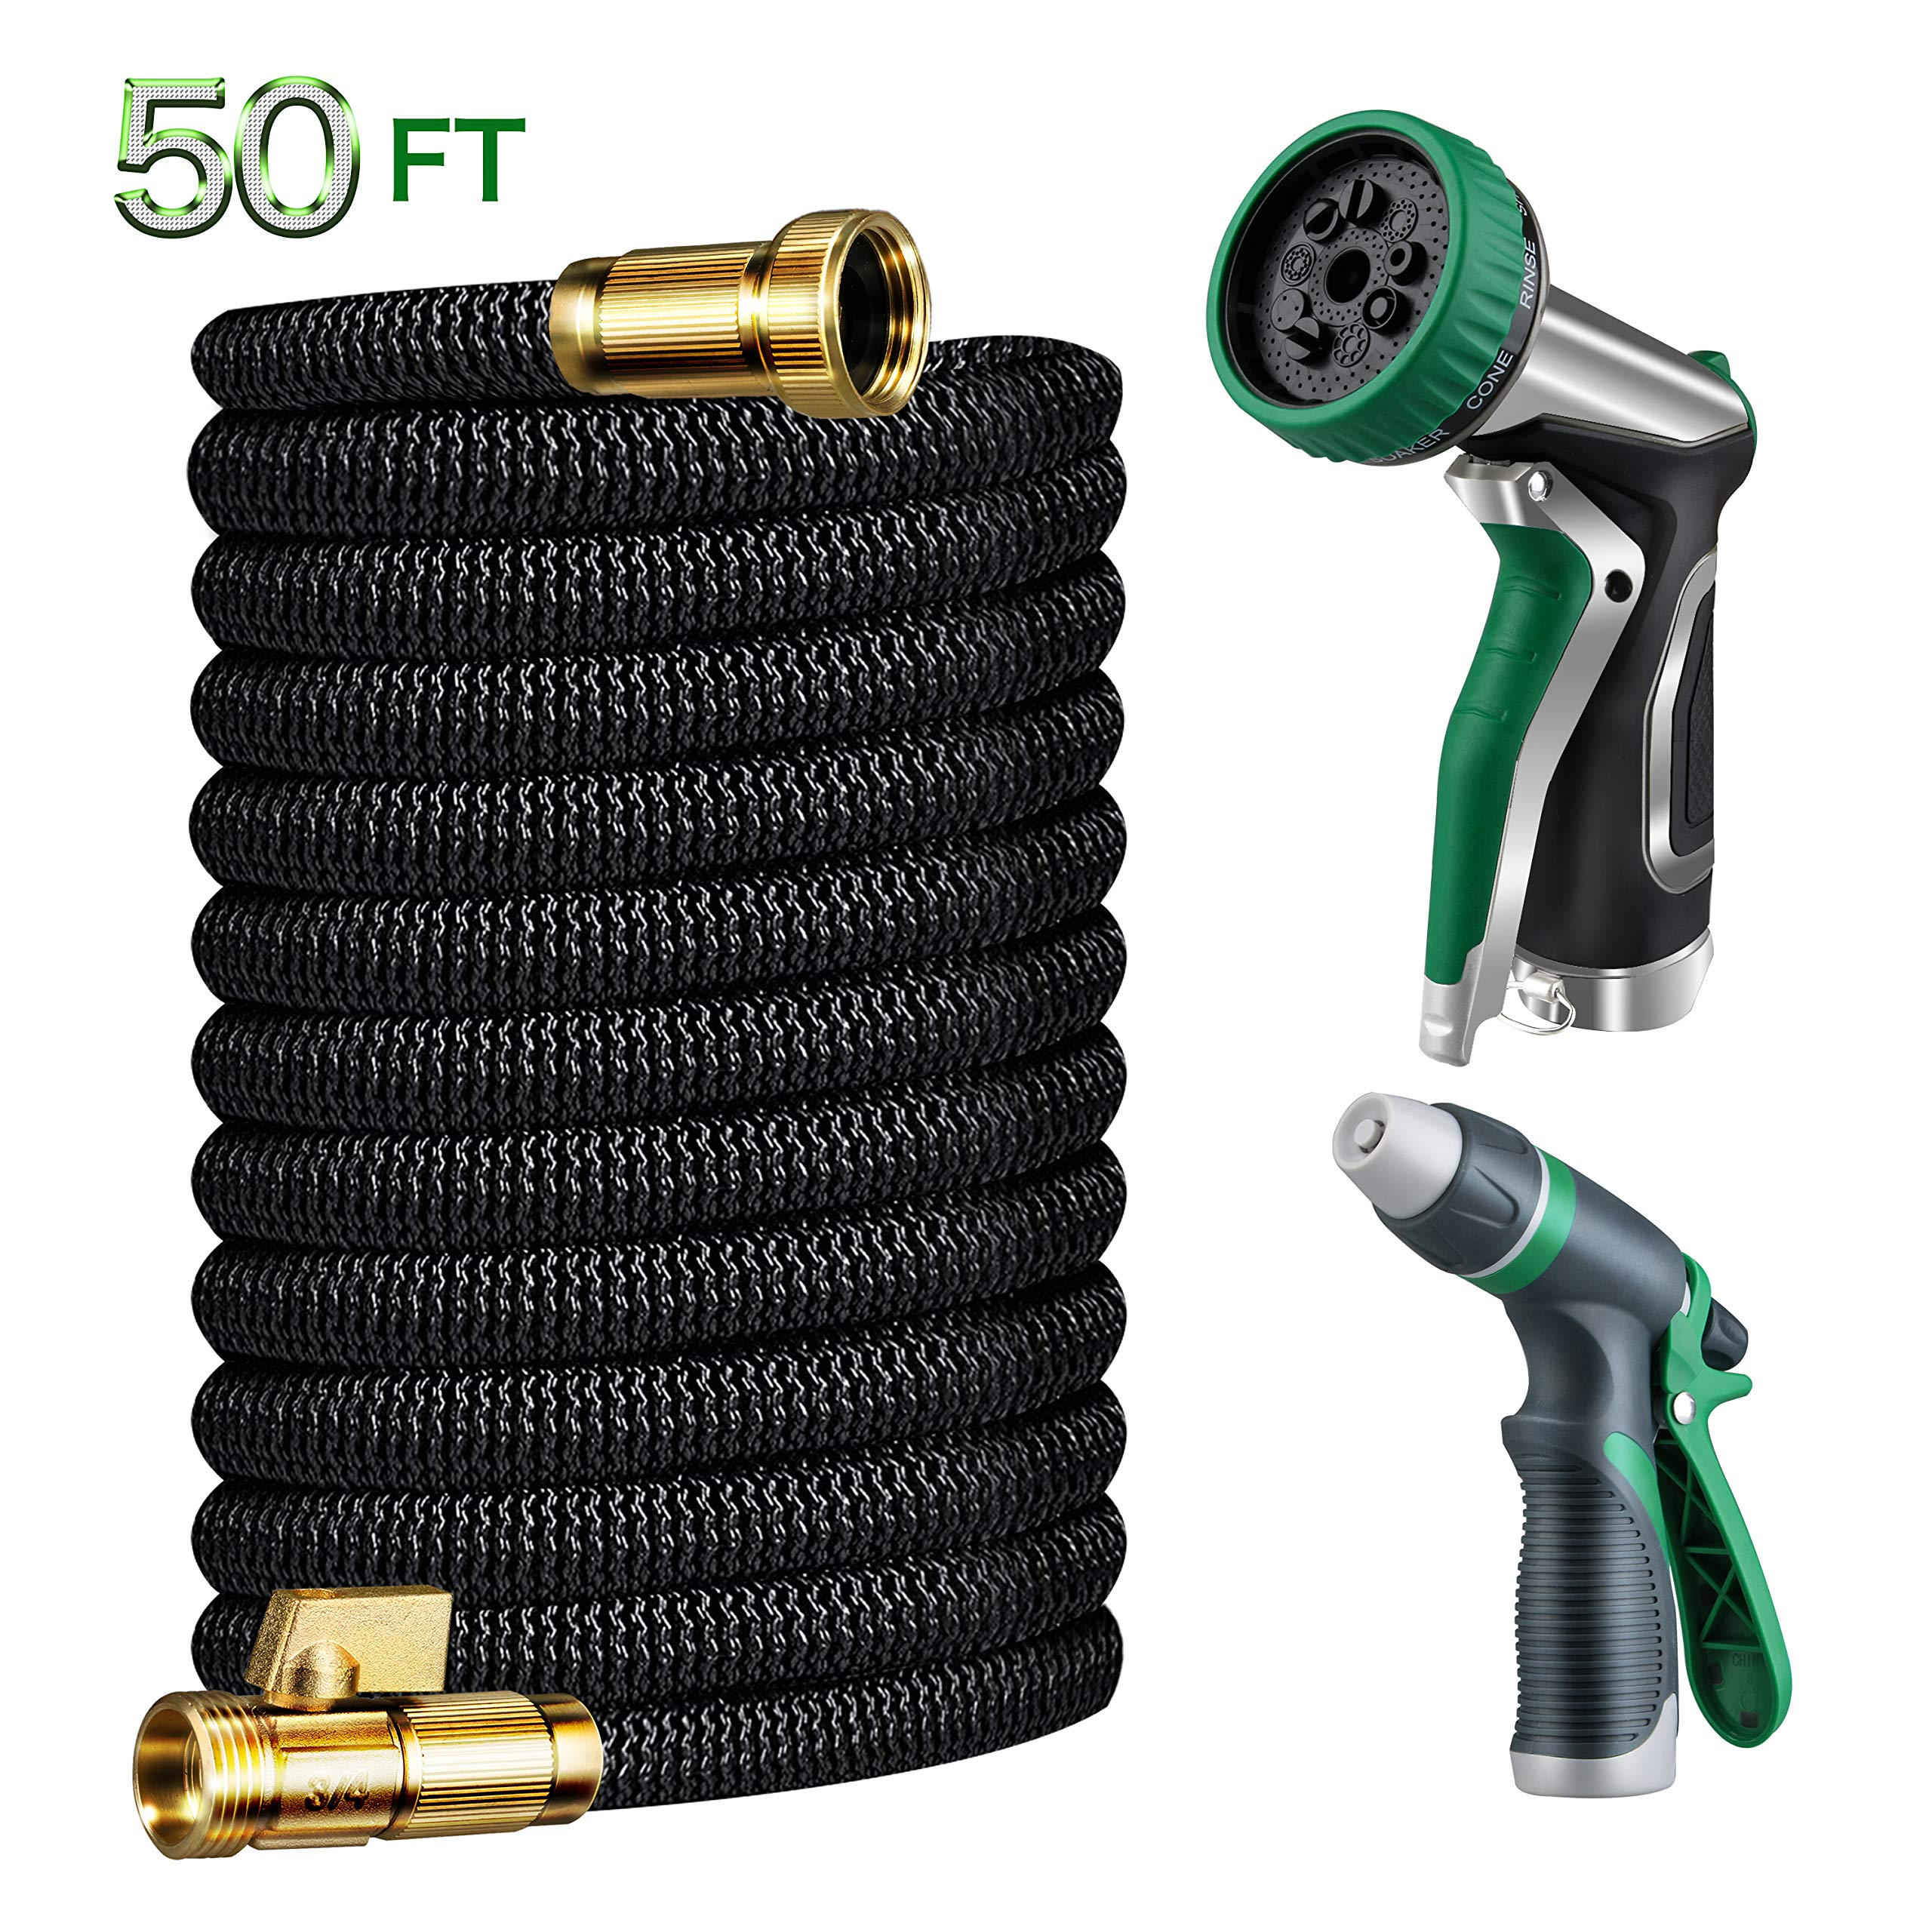 Gamegie Expandable Garden Hose 50 ft,Water Hose Metal Hose Nozzle Spray & Car Washing Nozzle,2018 Upgrade Extra Strength Duct Hose